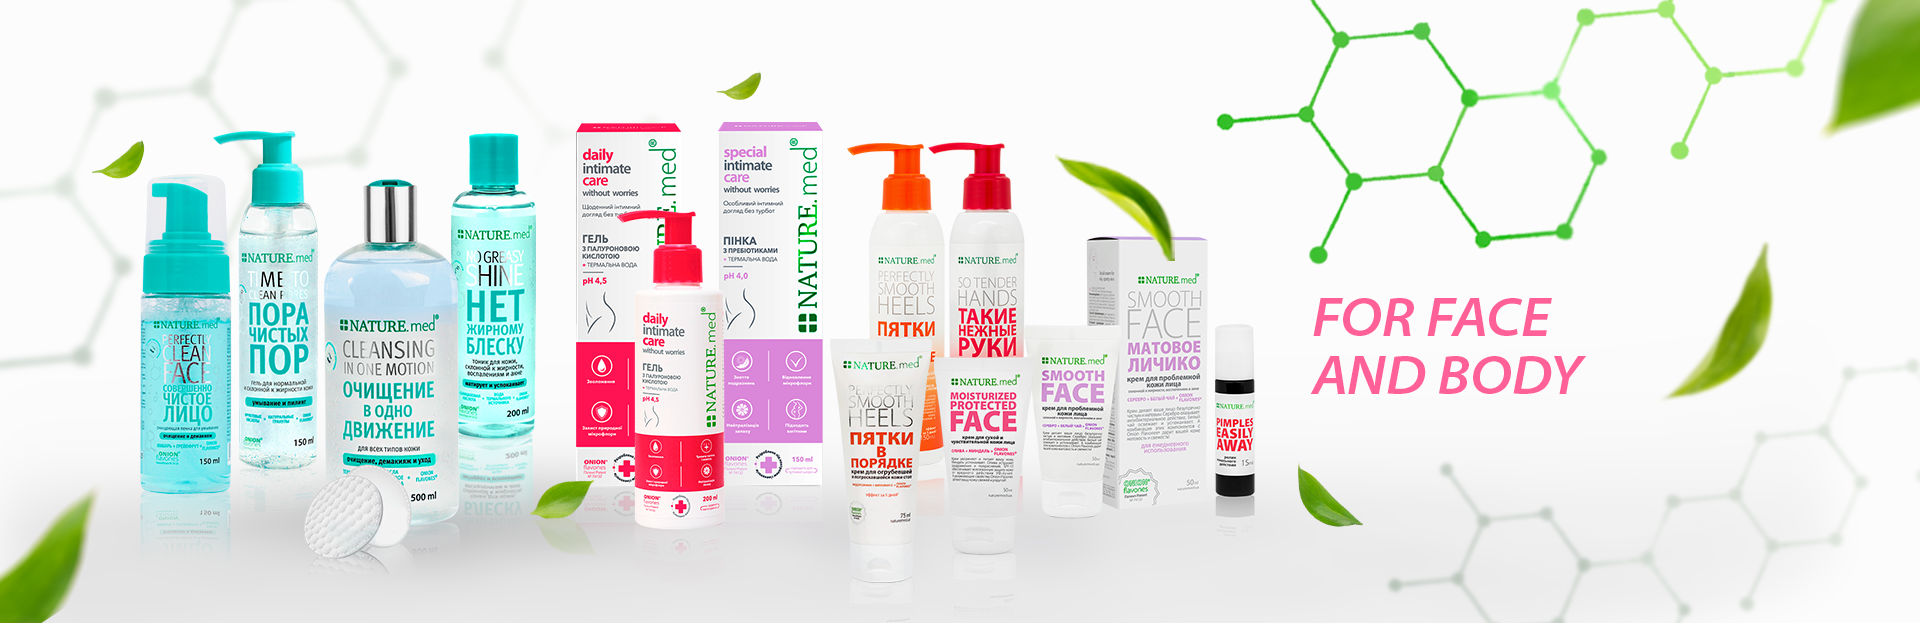 For face and body